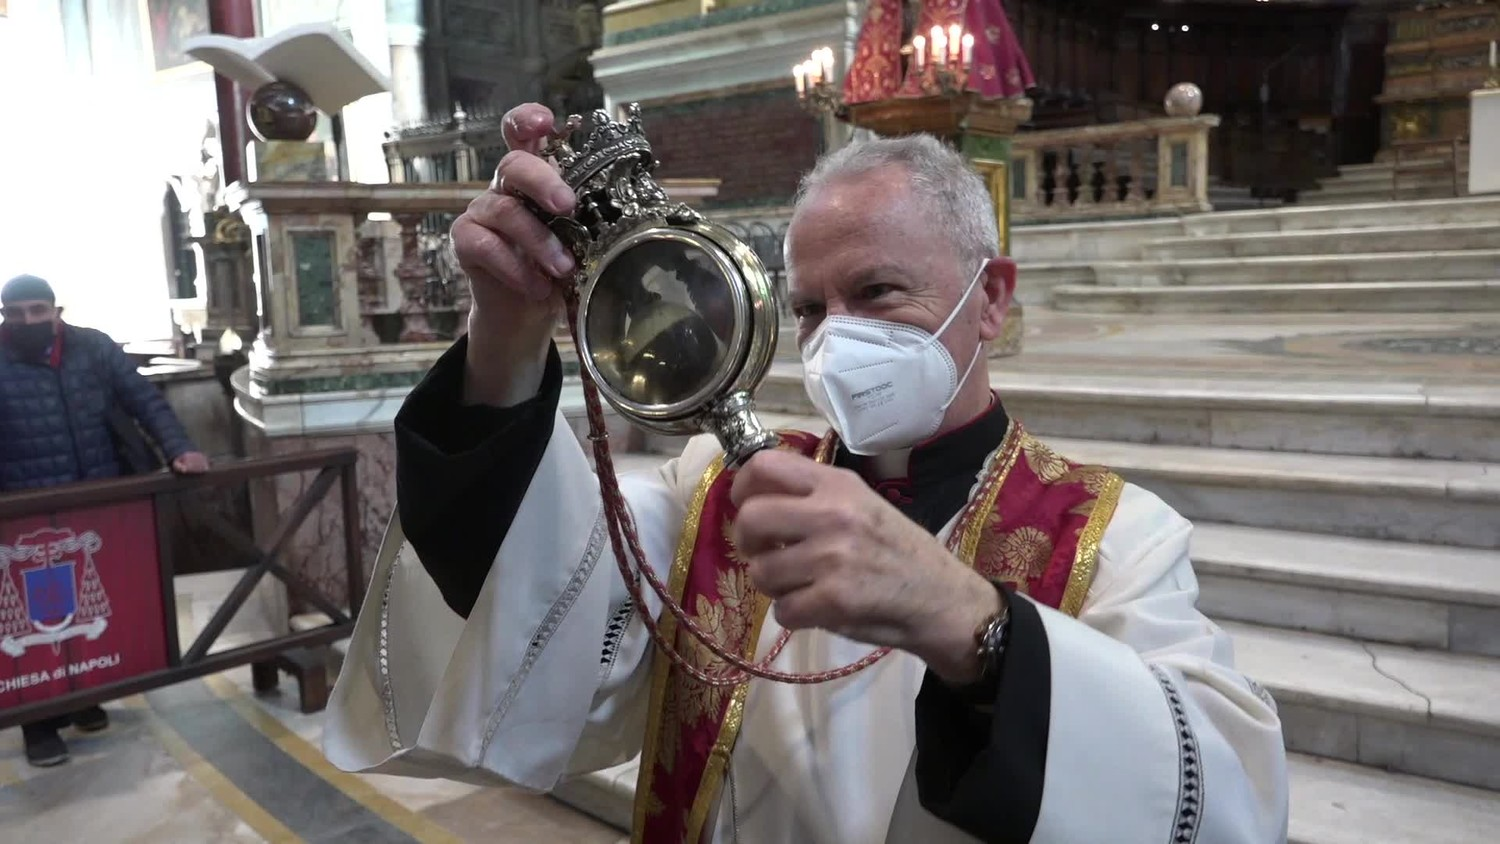 Miracle of Saint Januarius did not happen in Italy does it mean an imminent disaster